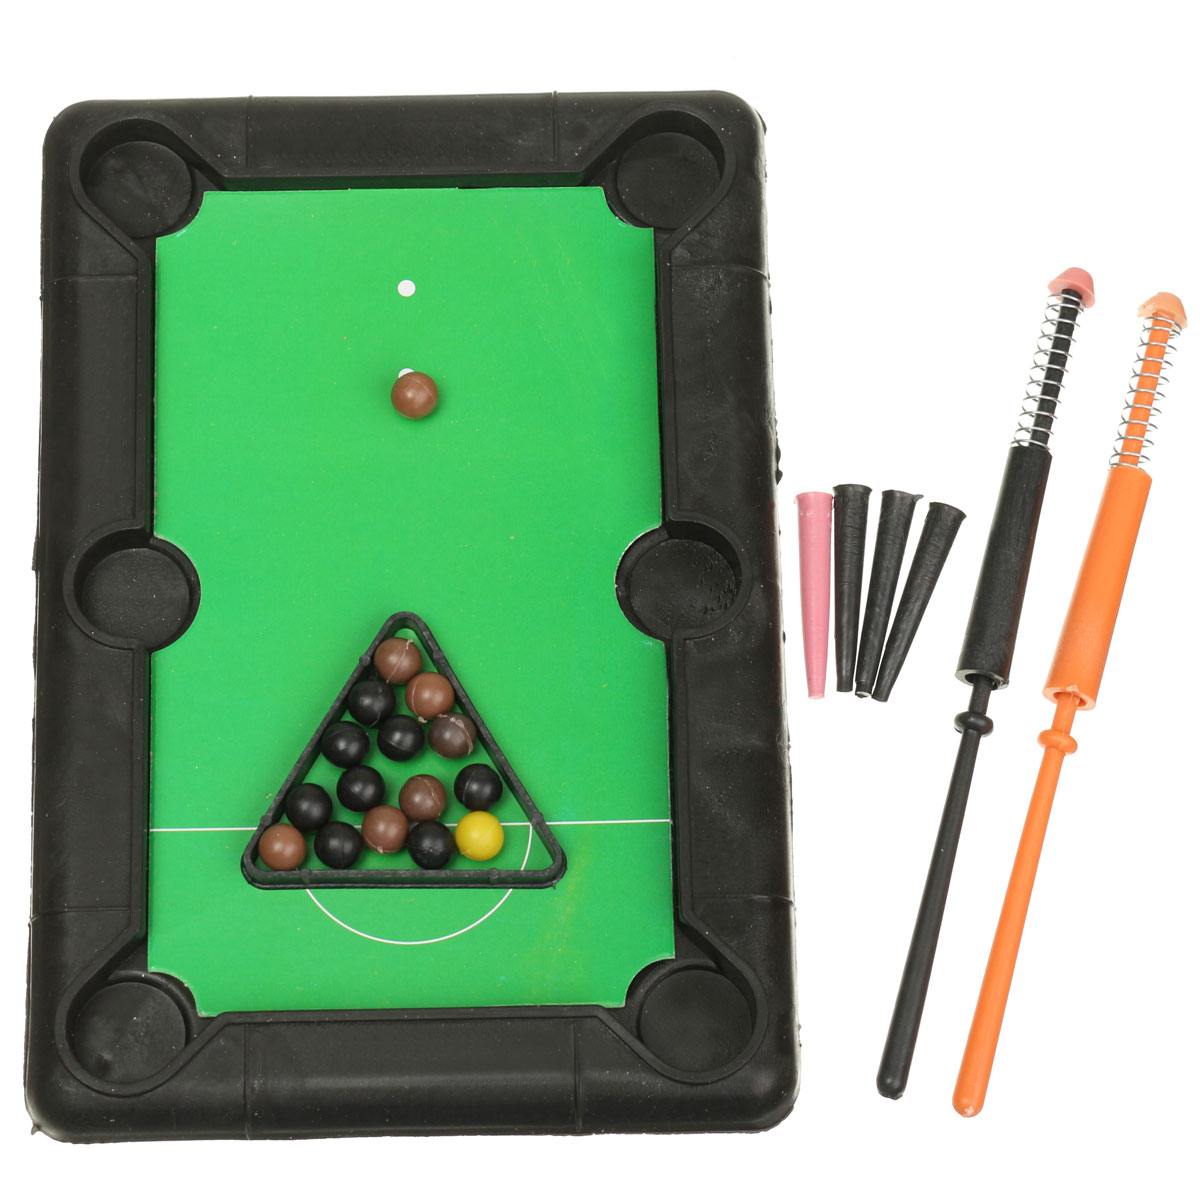 Plastic Mini Billiard Snooker table toy For Children Interesting Entertainment Sport Game Intellectual Toys Kids Gift(China (Mainland))